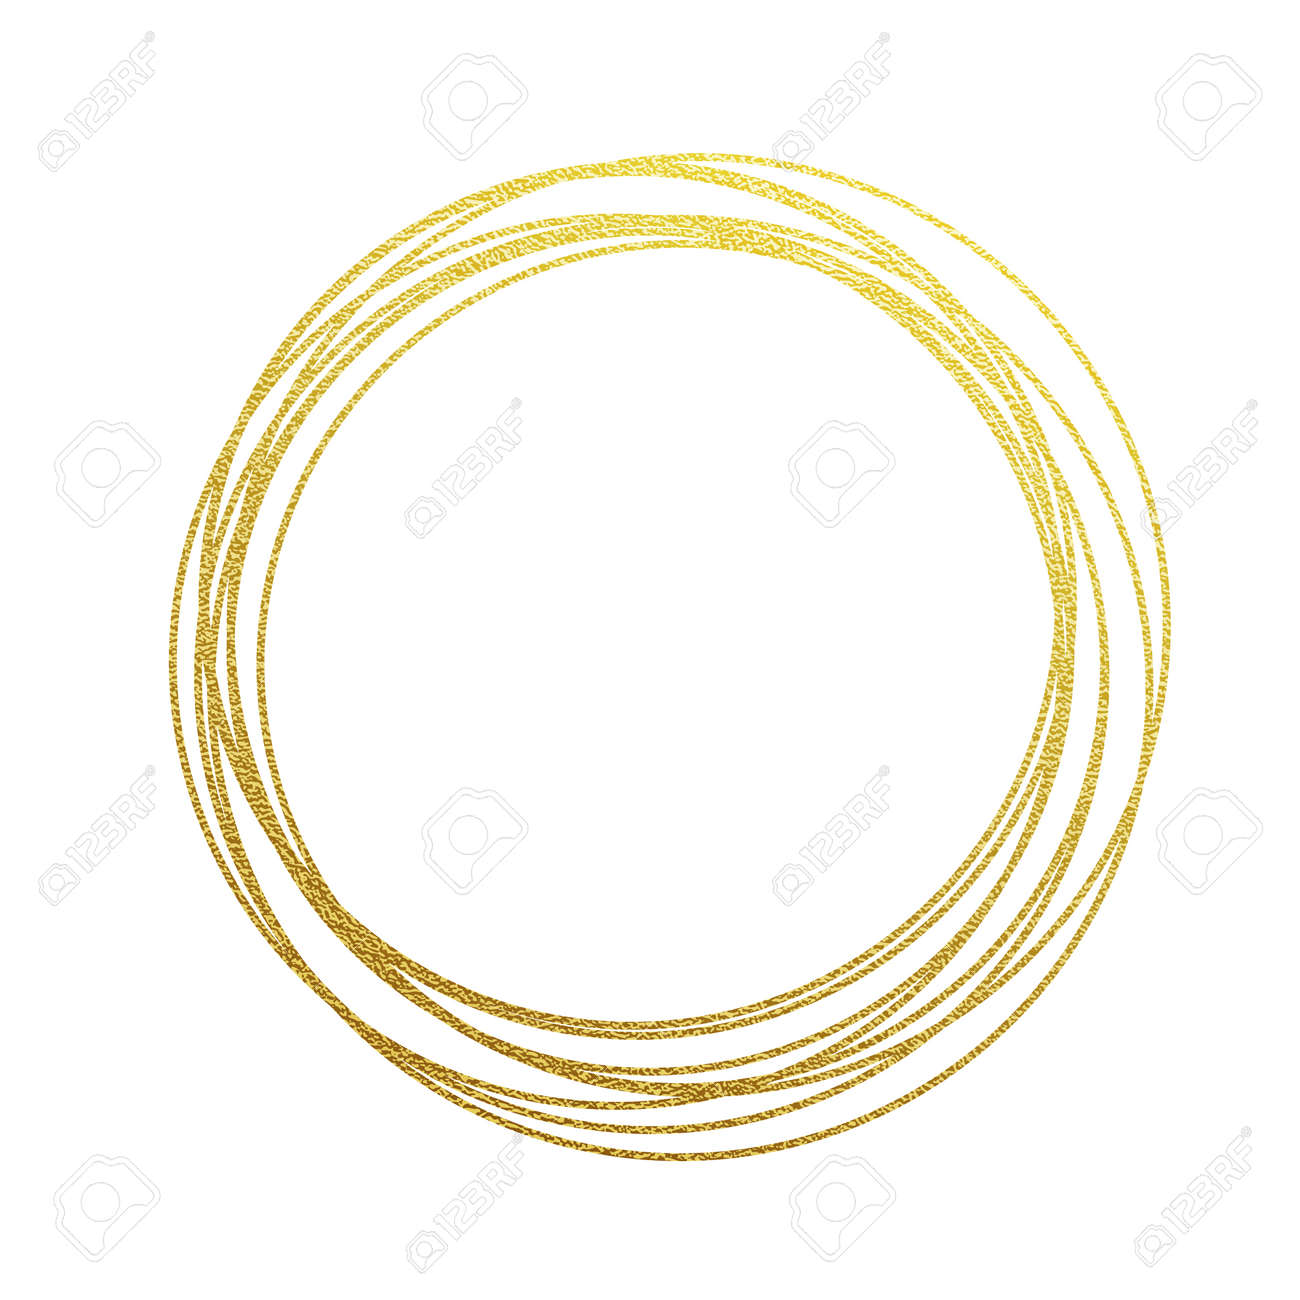 Design Enement Rings Online Free | Golden Circles And Rings Decoration Design Element Of Gold Foil